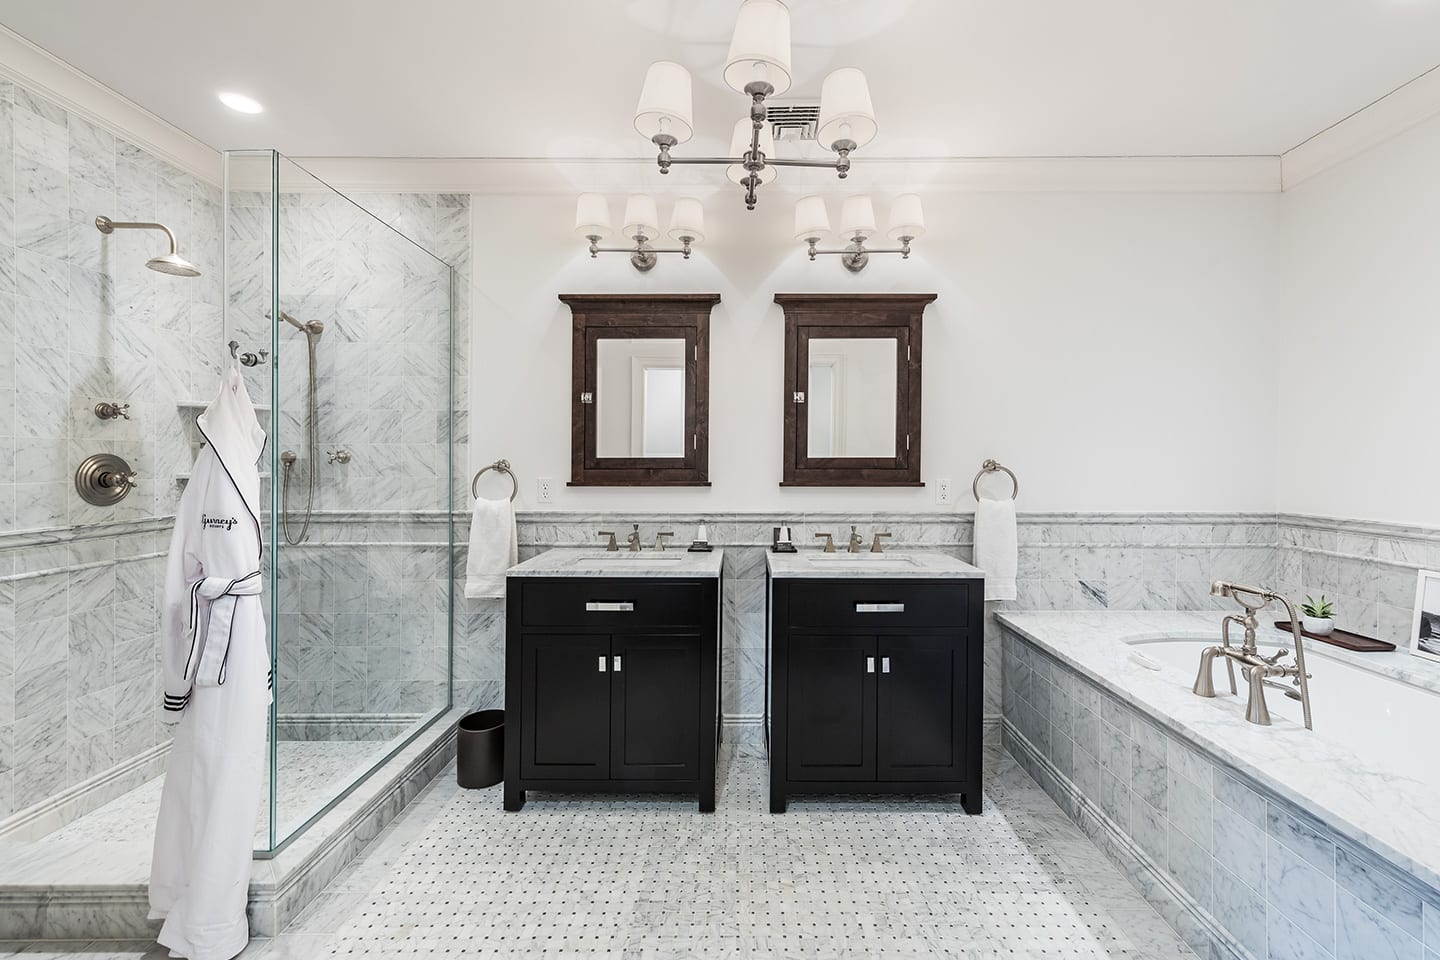 Hiltop 1 Master Bathroom with his and hers sinks, marble detailing, a walk in shower and bathtub